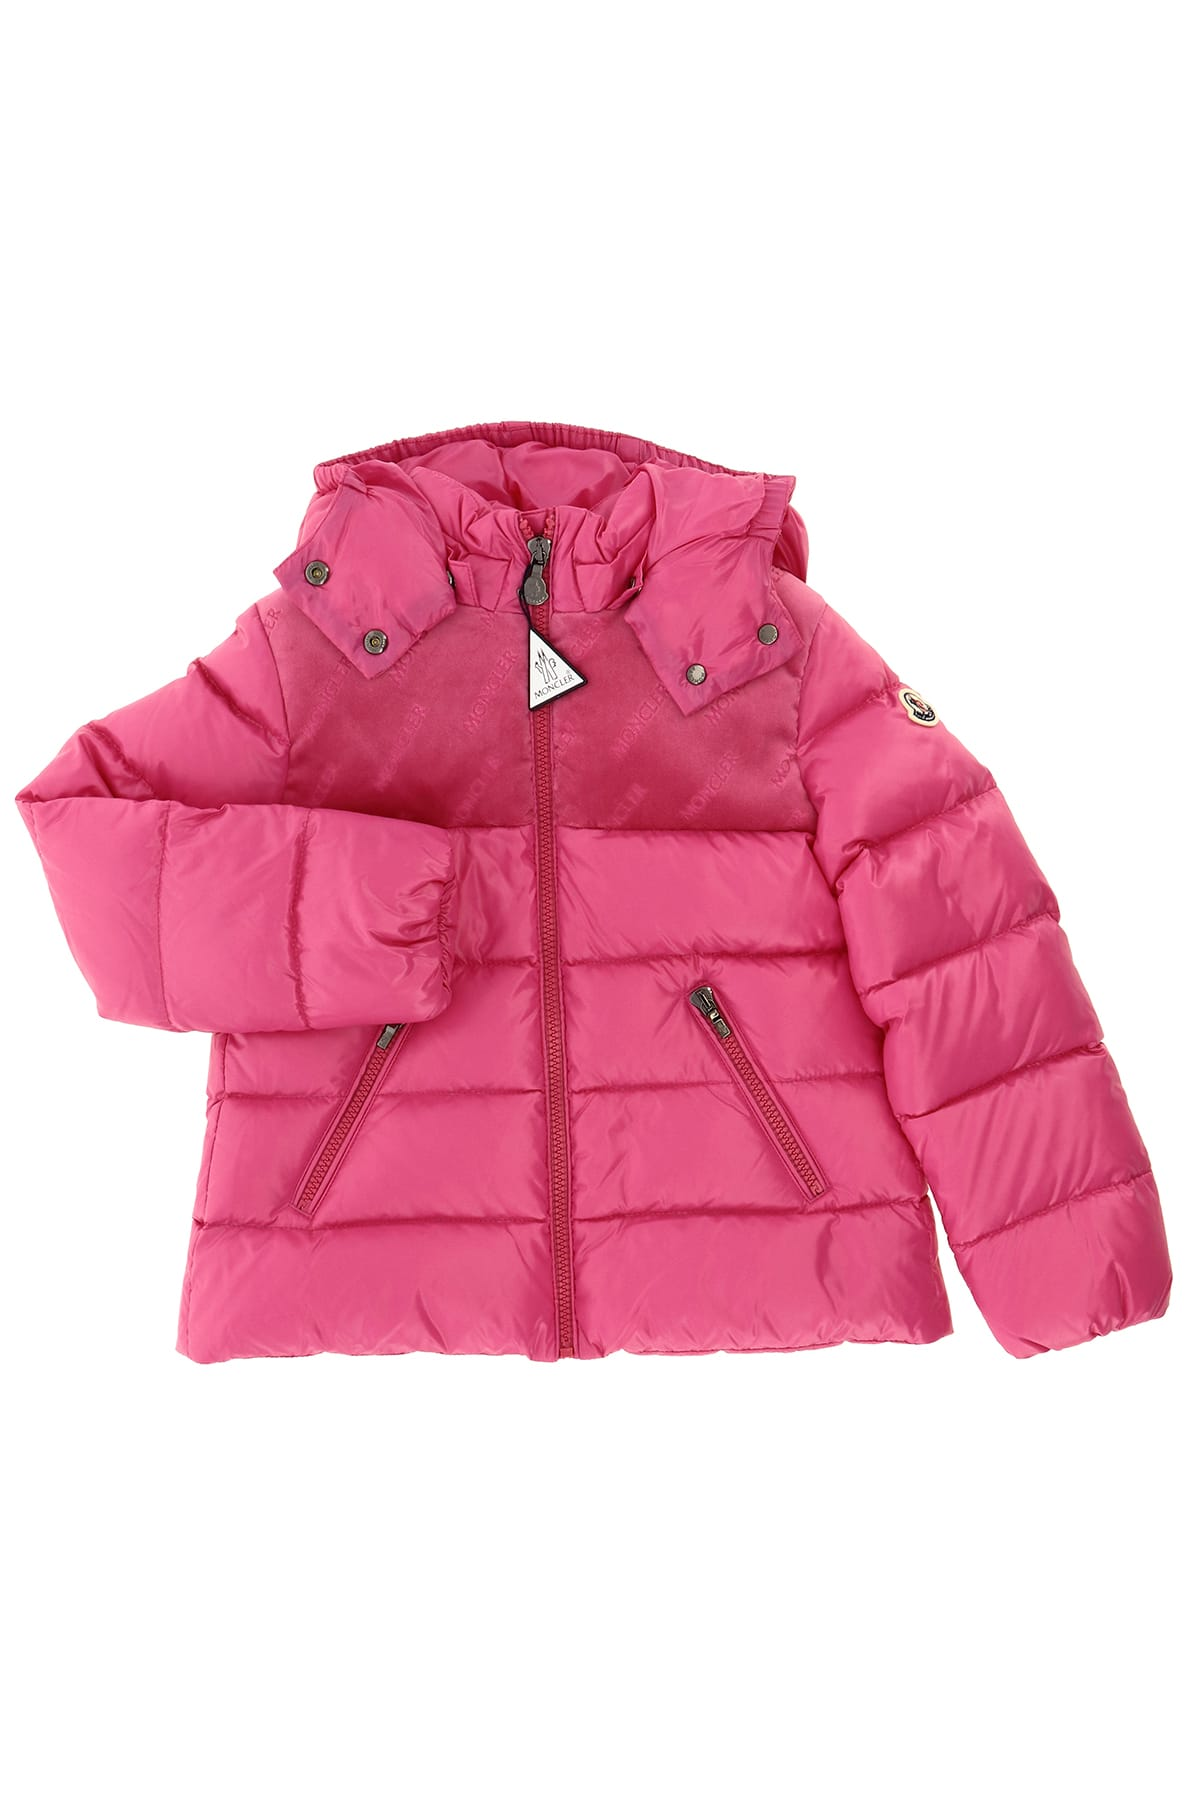 Moncler Kids' Pasapale Down Jacket With Detachable Hood In Fucsia